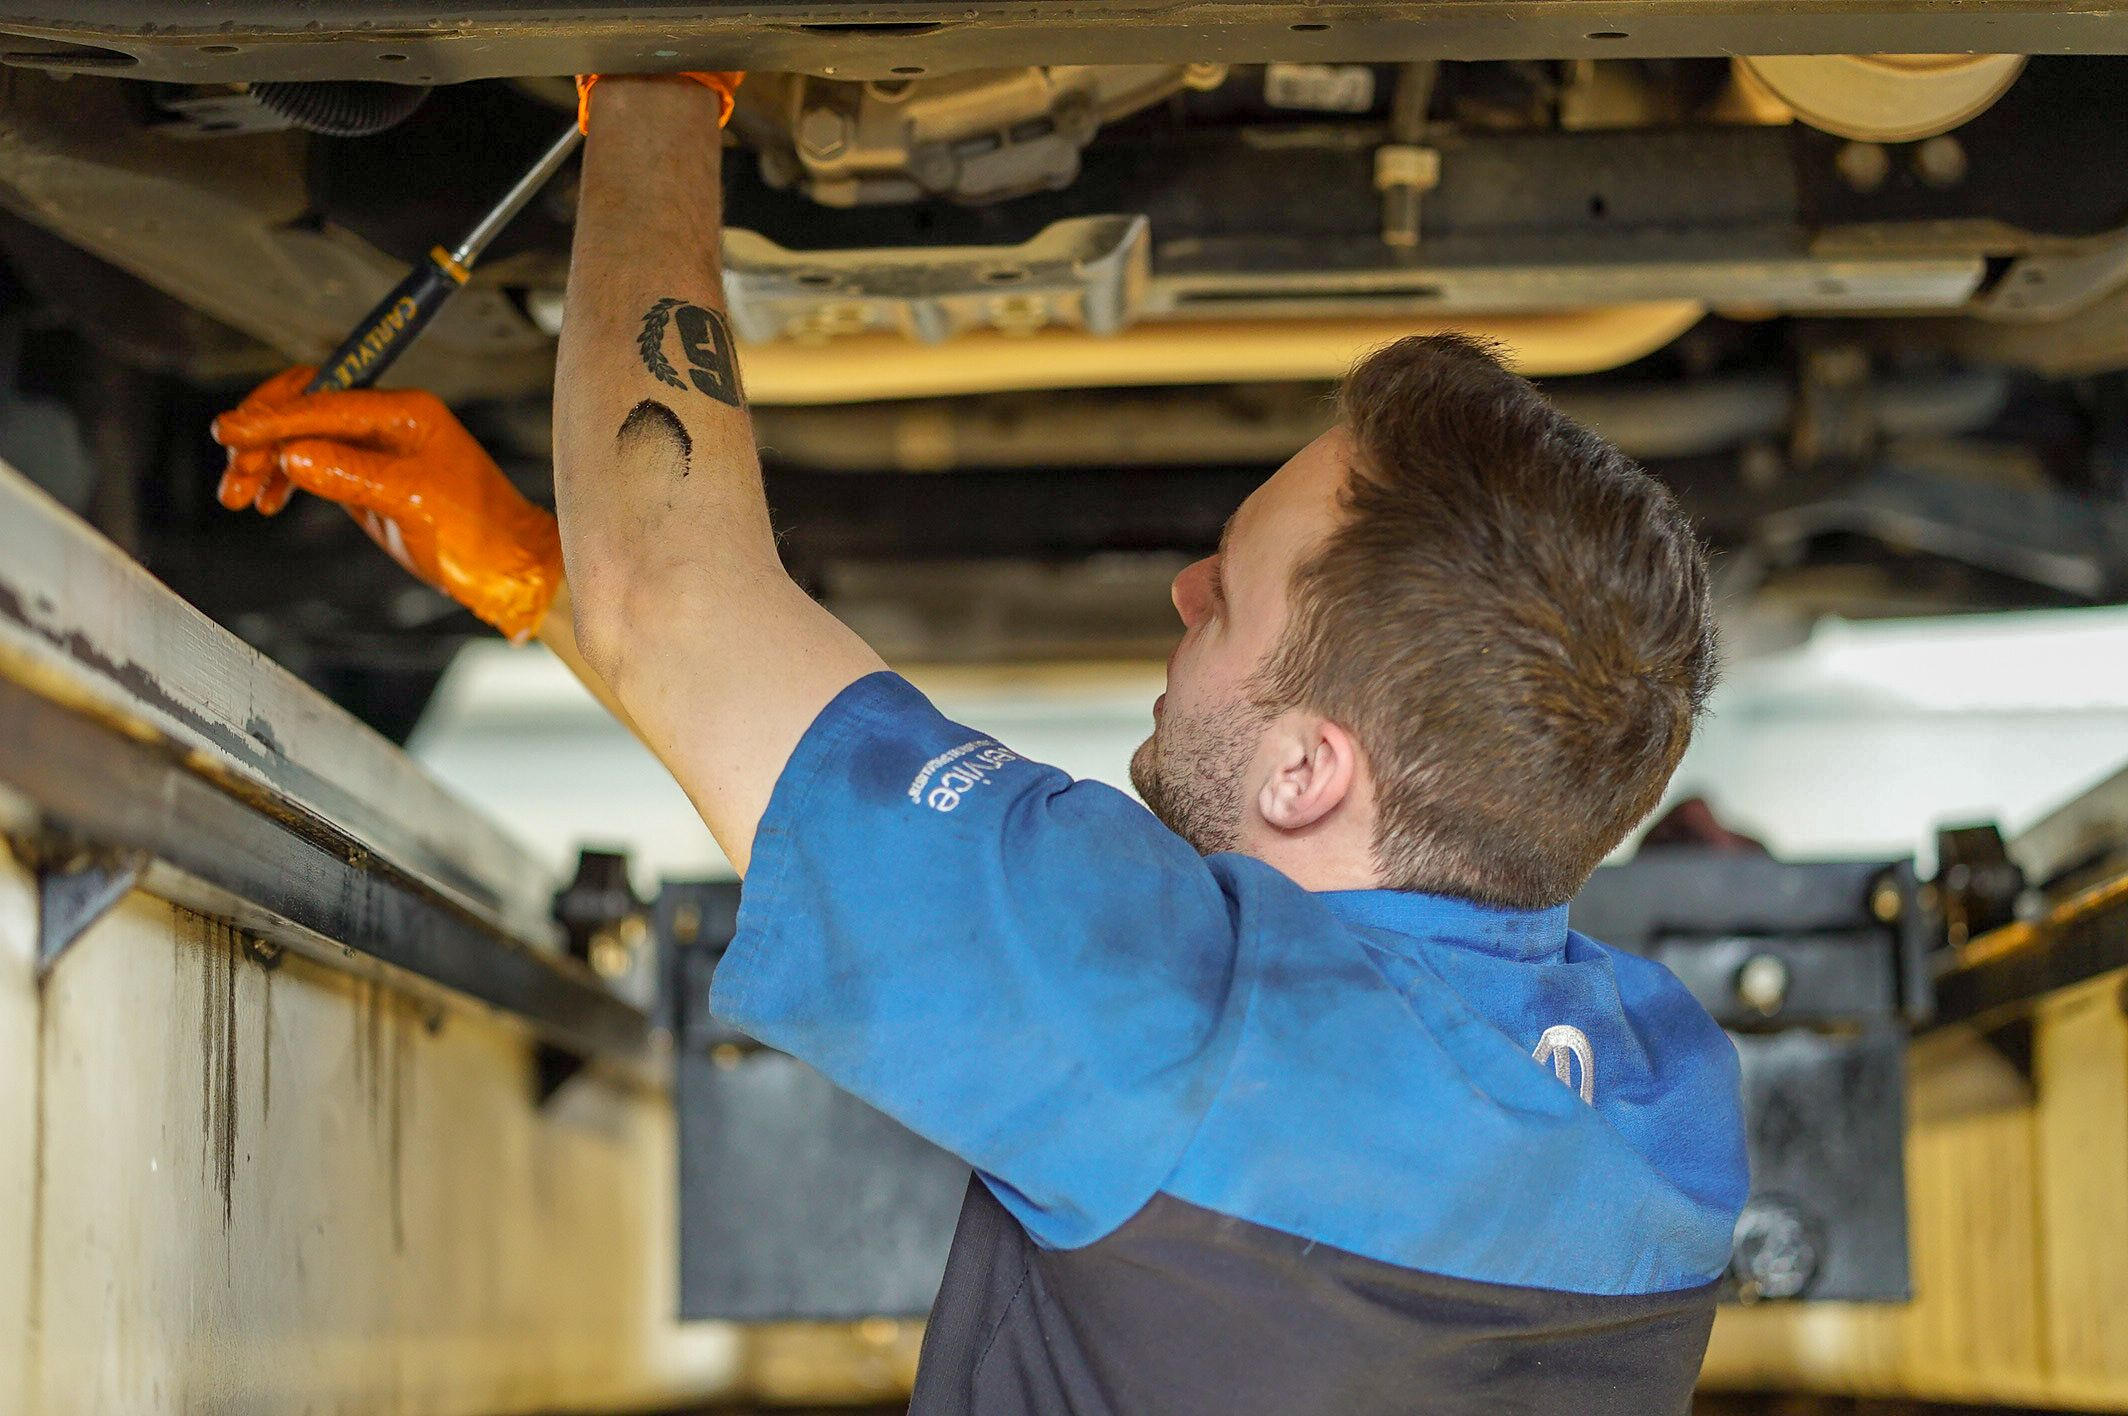 A photo of an oil change technician at work.